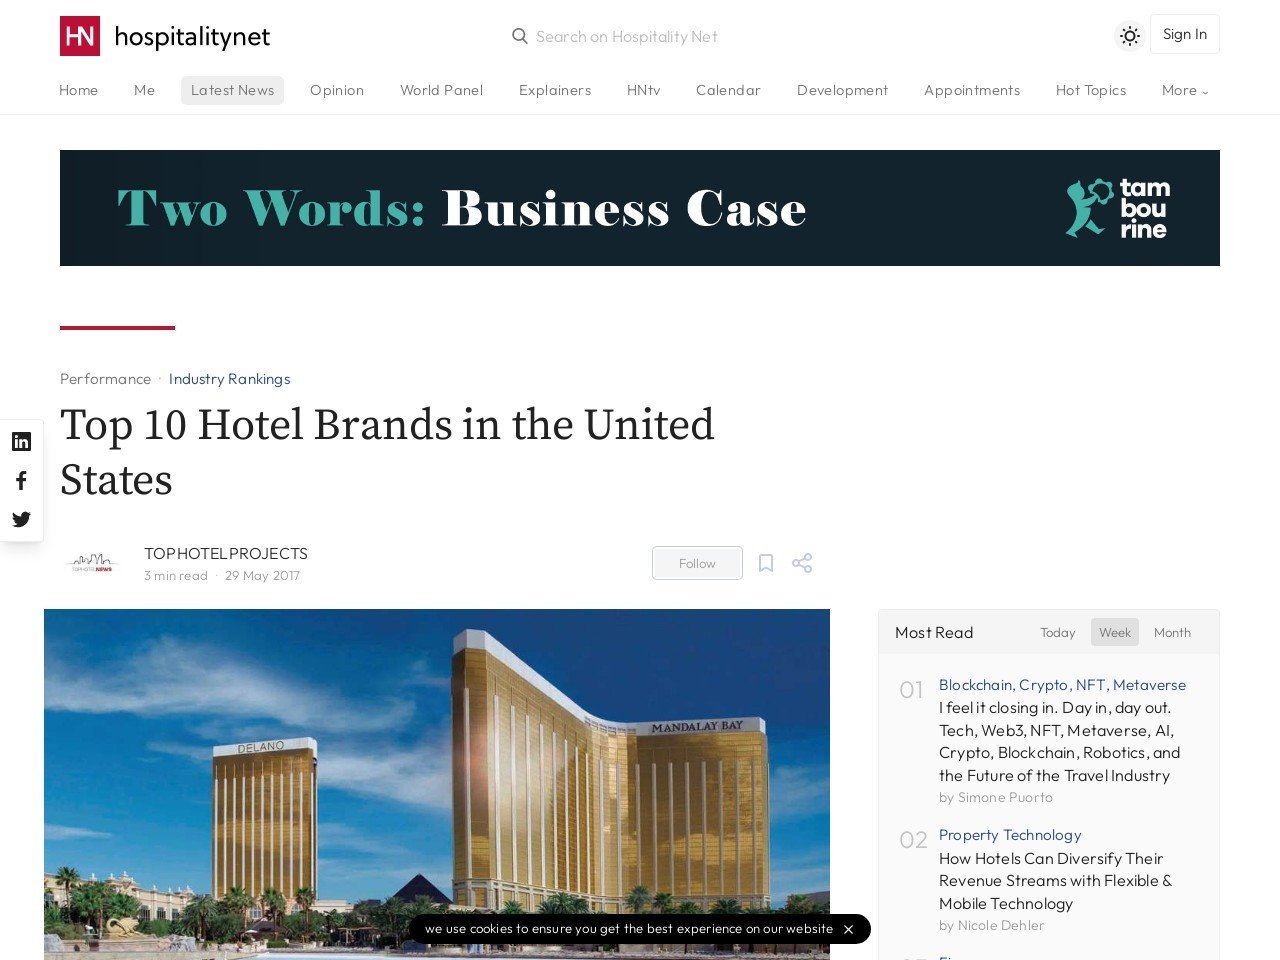 Top 10 Hotel Brands in the United States